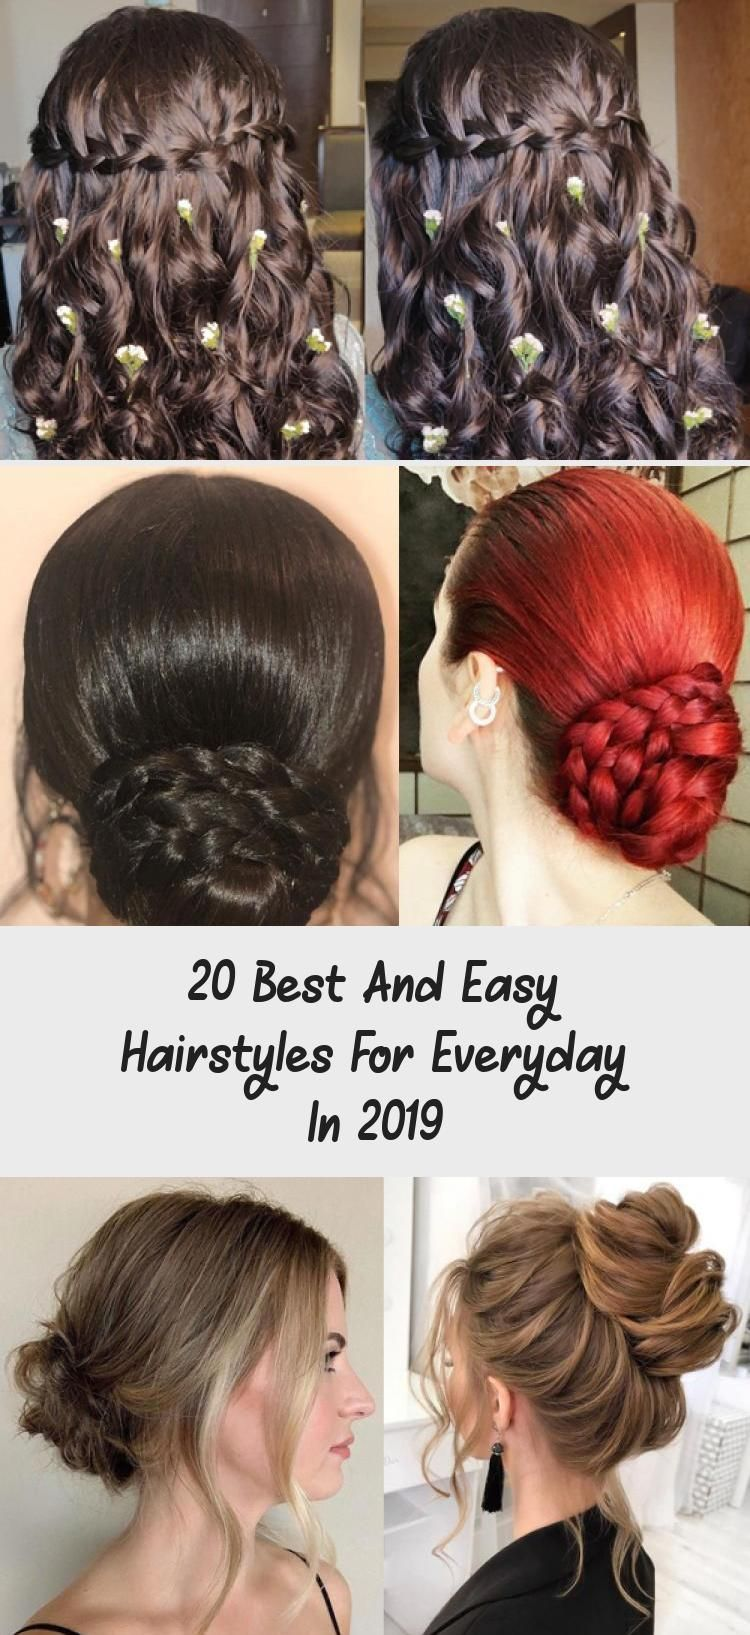 20 Best And Easy Hairstyles For Everyday In 2019 Best Hairstyles Top 17 Casual Hairstyles For Everyda In 2020 Easy Everyday Hairstyles Hair Styles Cool Hairstyles